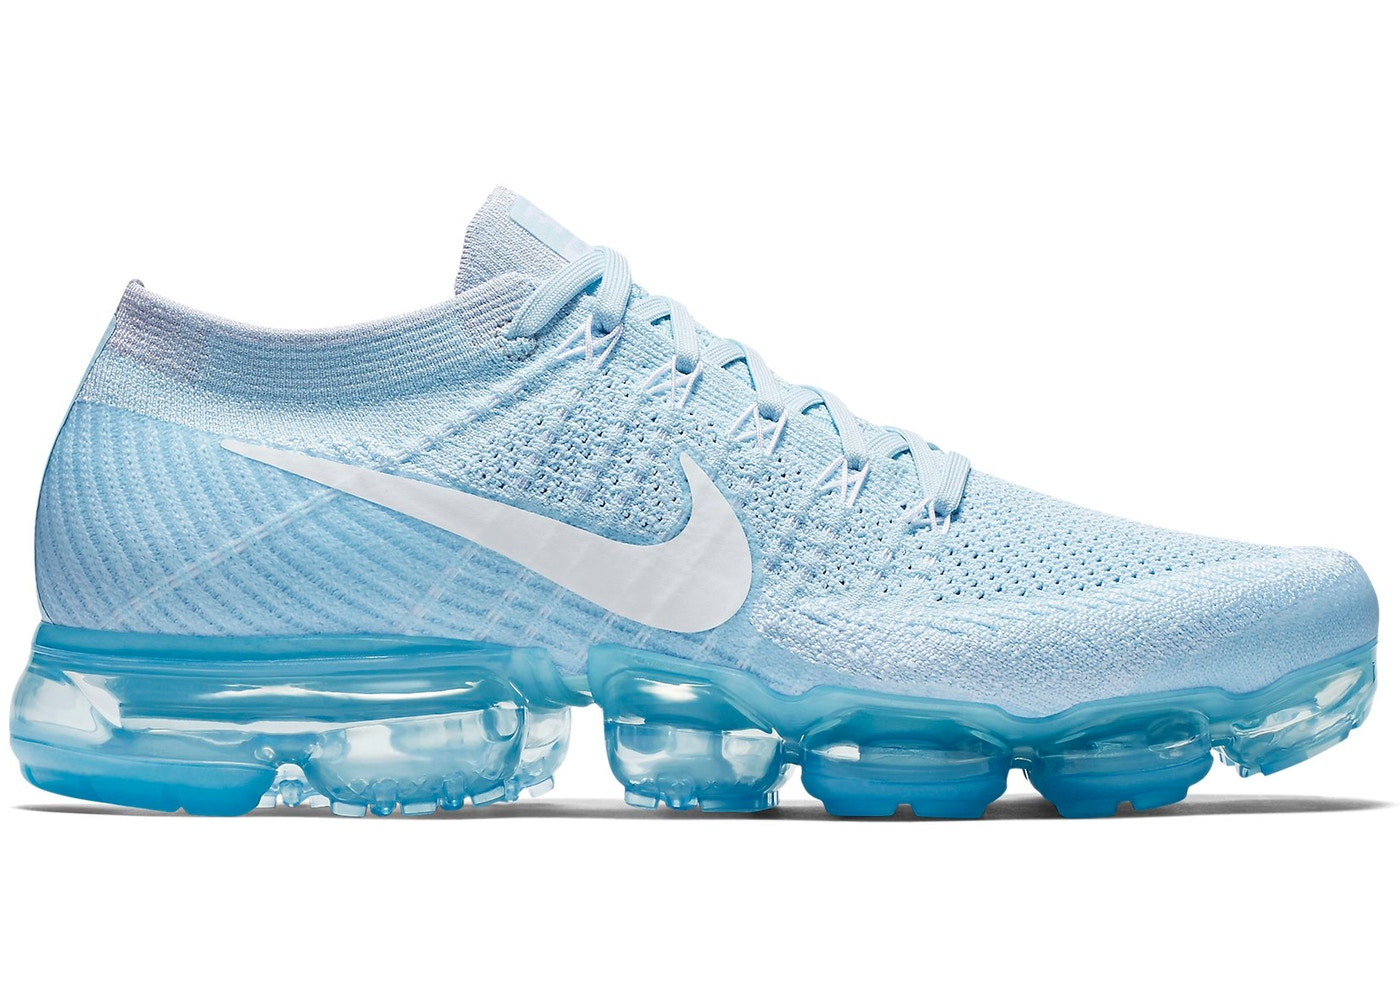 separation shoes 172d7 d9548 nike air vapormax glacier blue